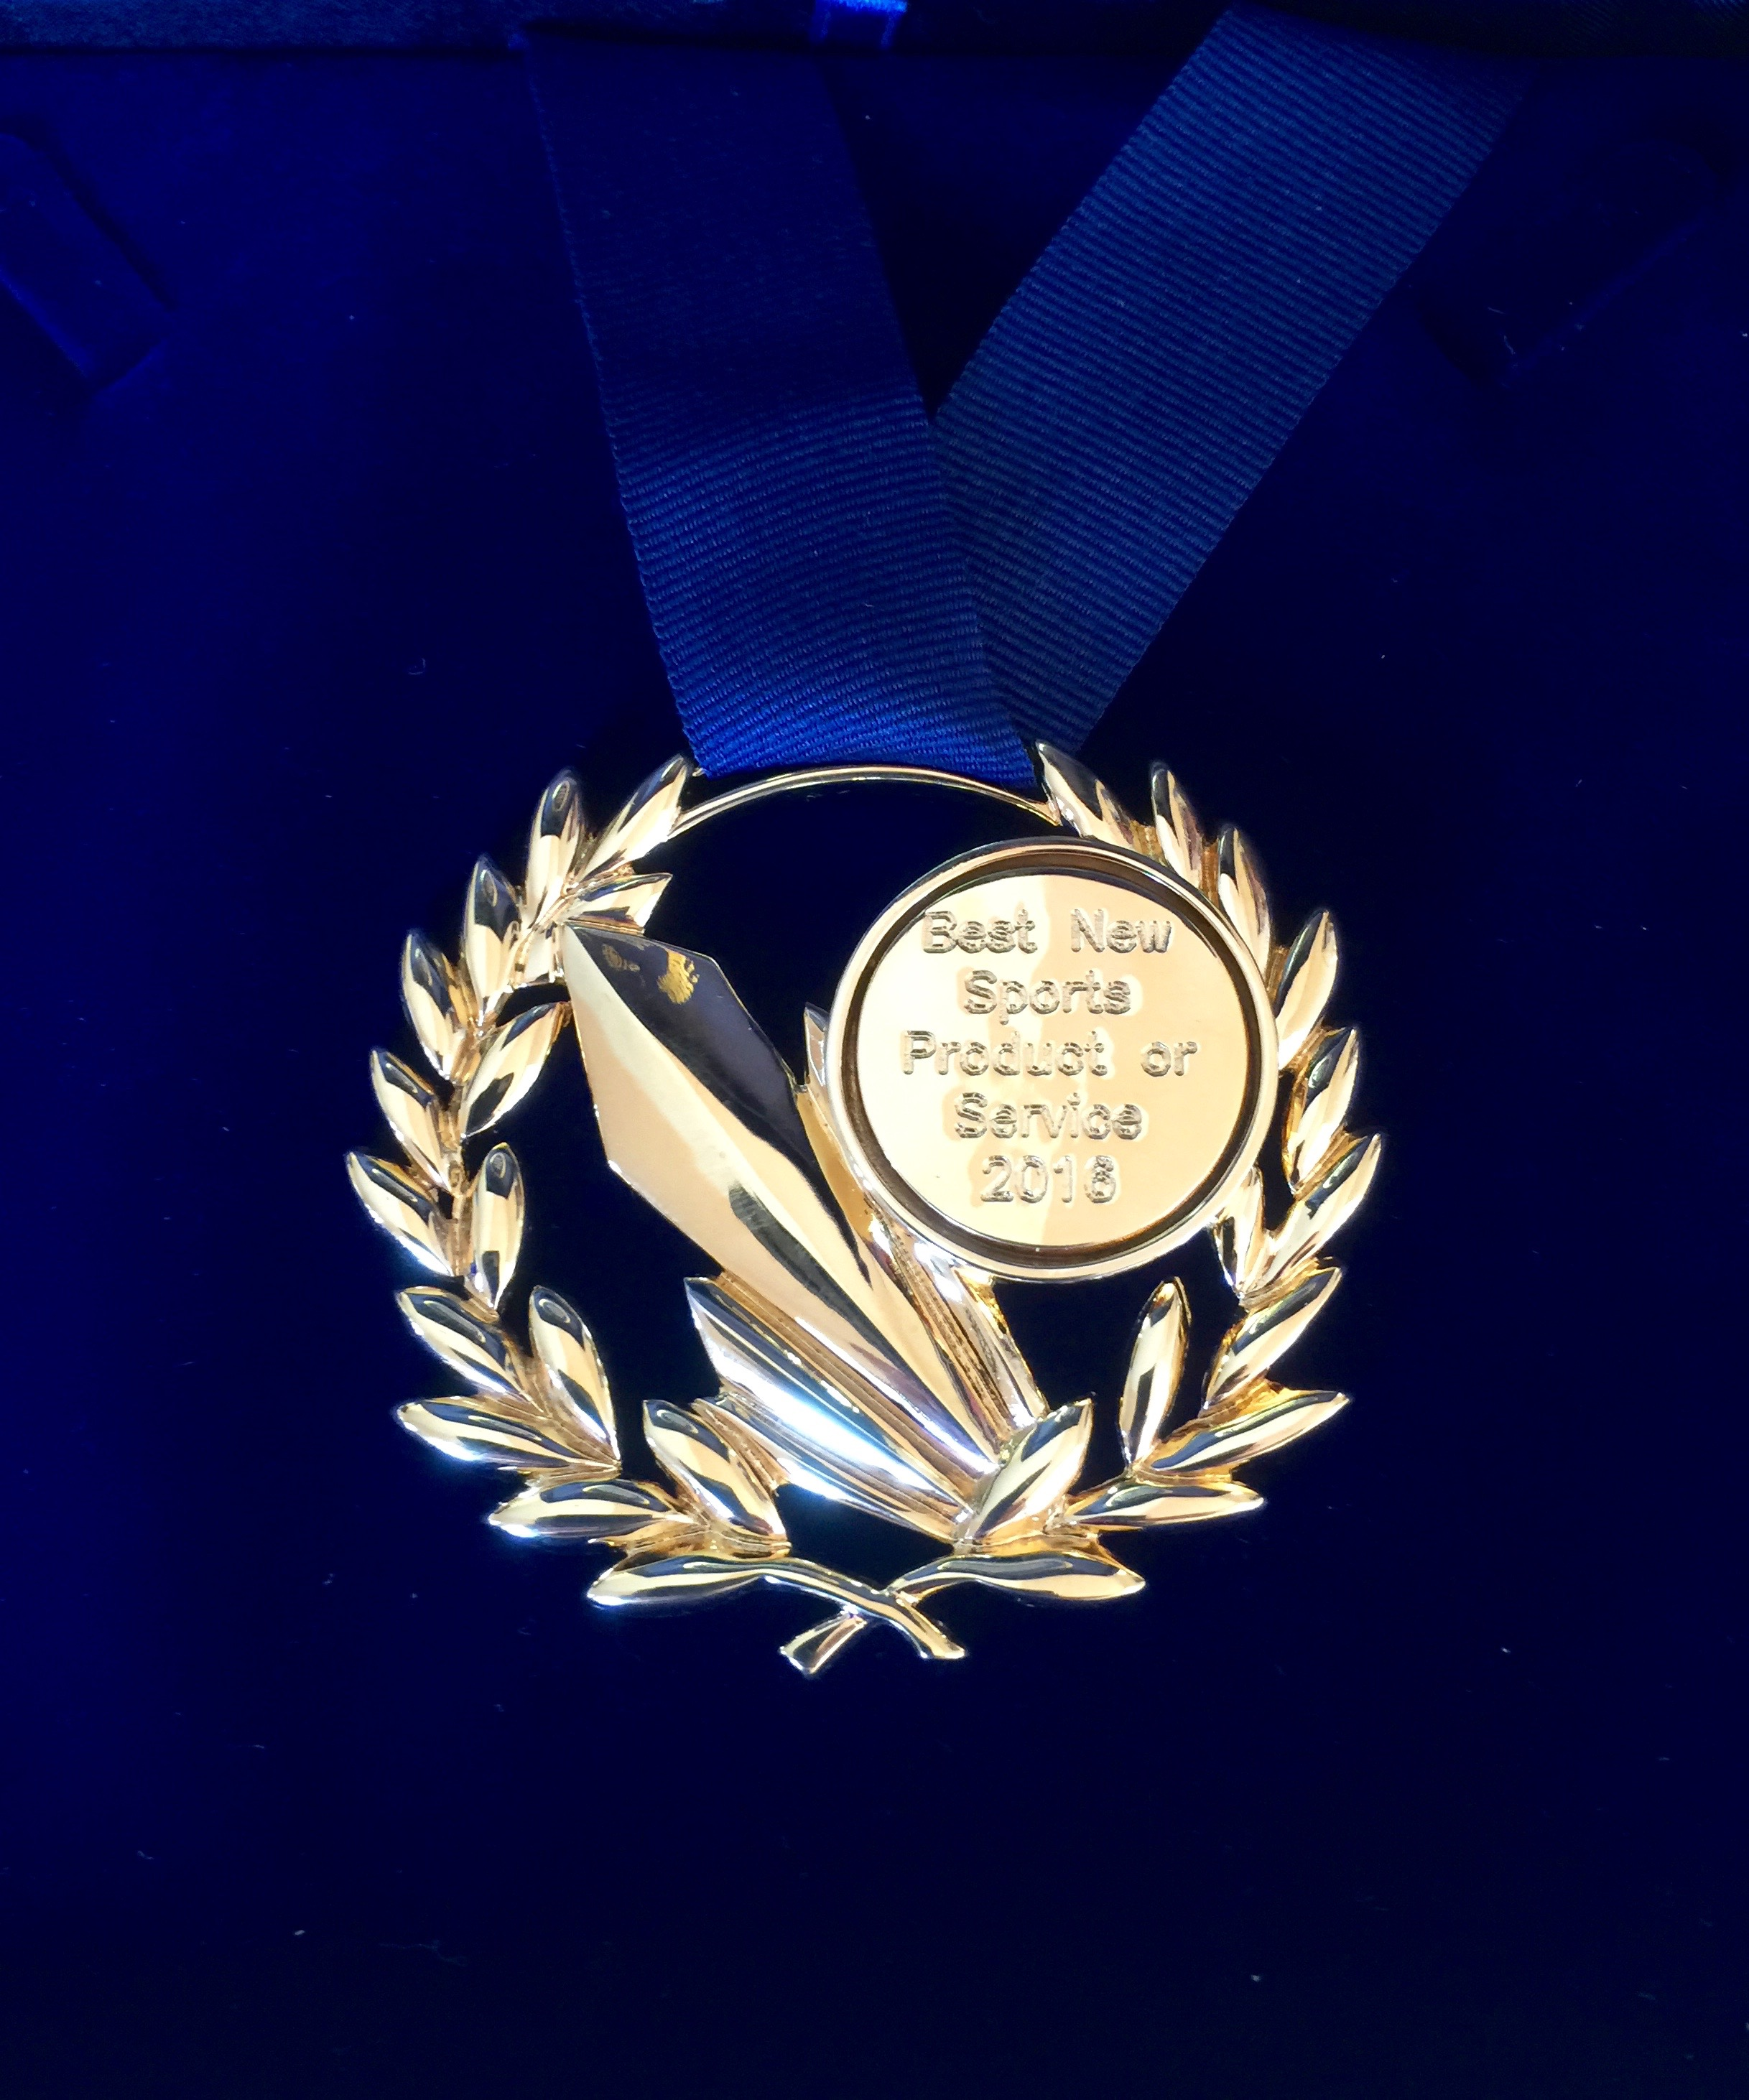 A very nice medal in recognition of Sports Labs strategy of innovation